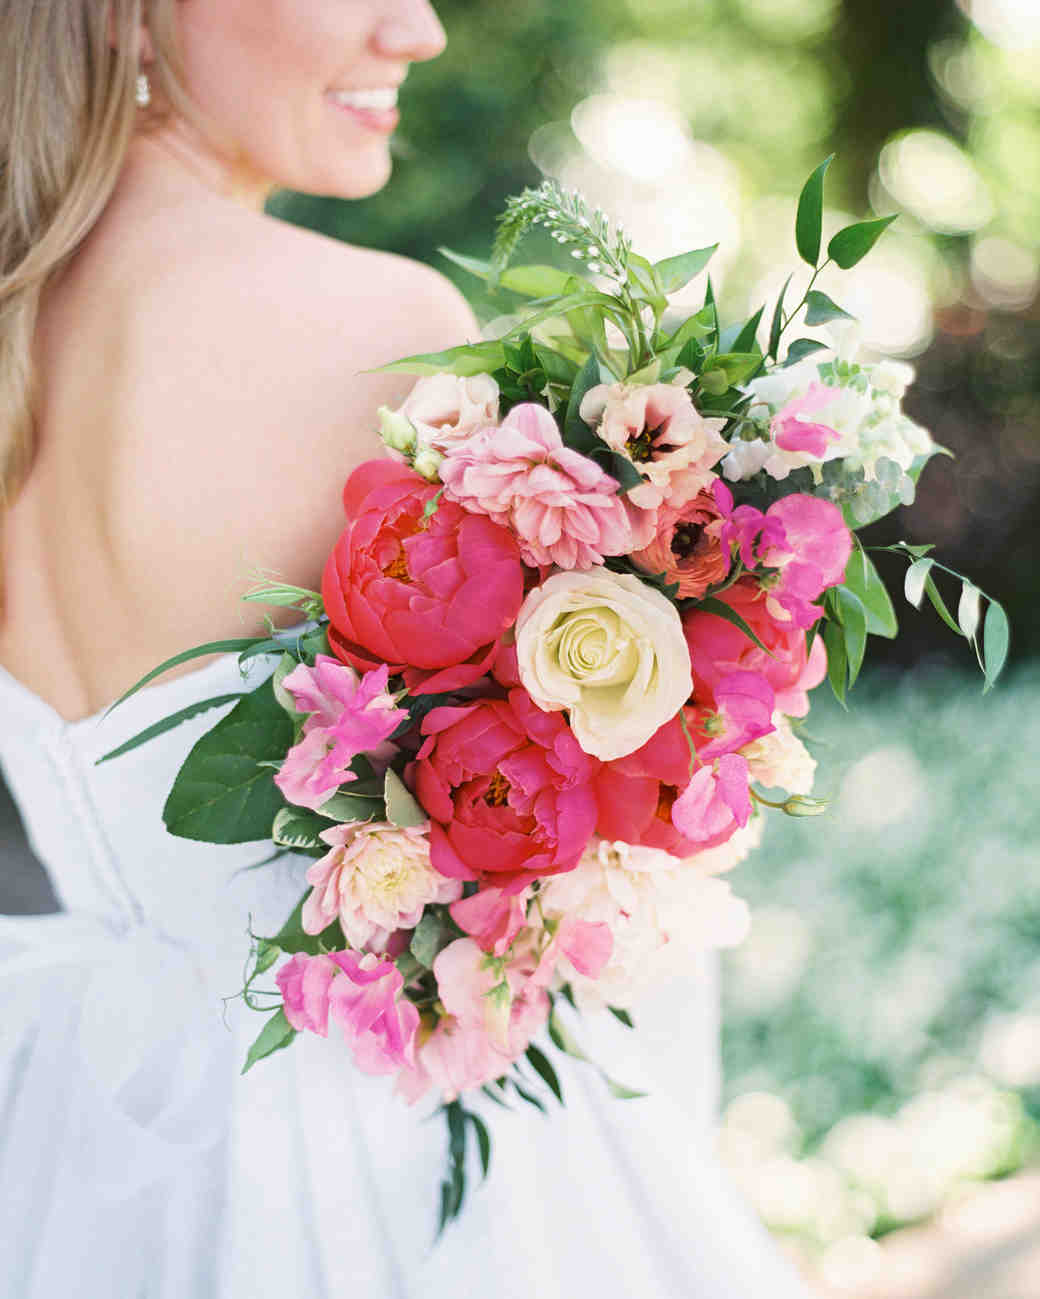 Wedding Bouquet in Shades of Pink